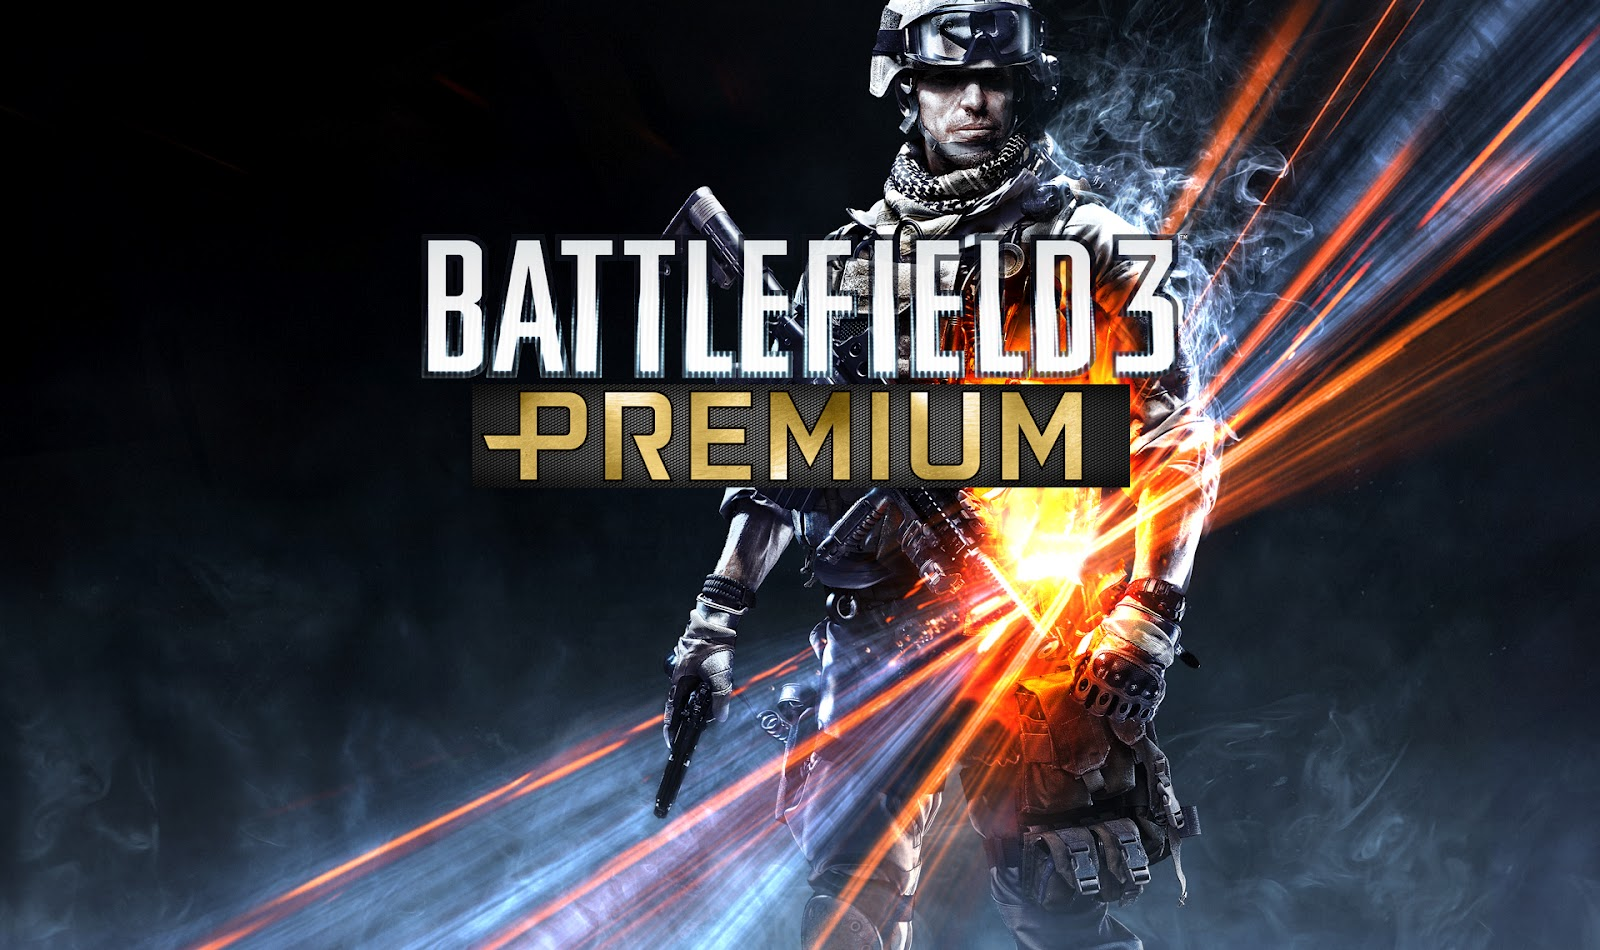 Battlefield+3+Premium+key+art Machinimas PWNSTAR Helps Answer the Question: Is Battlefield 3s Premium Worth It?